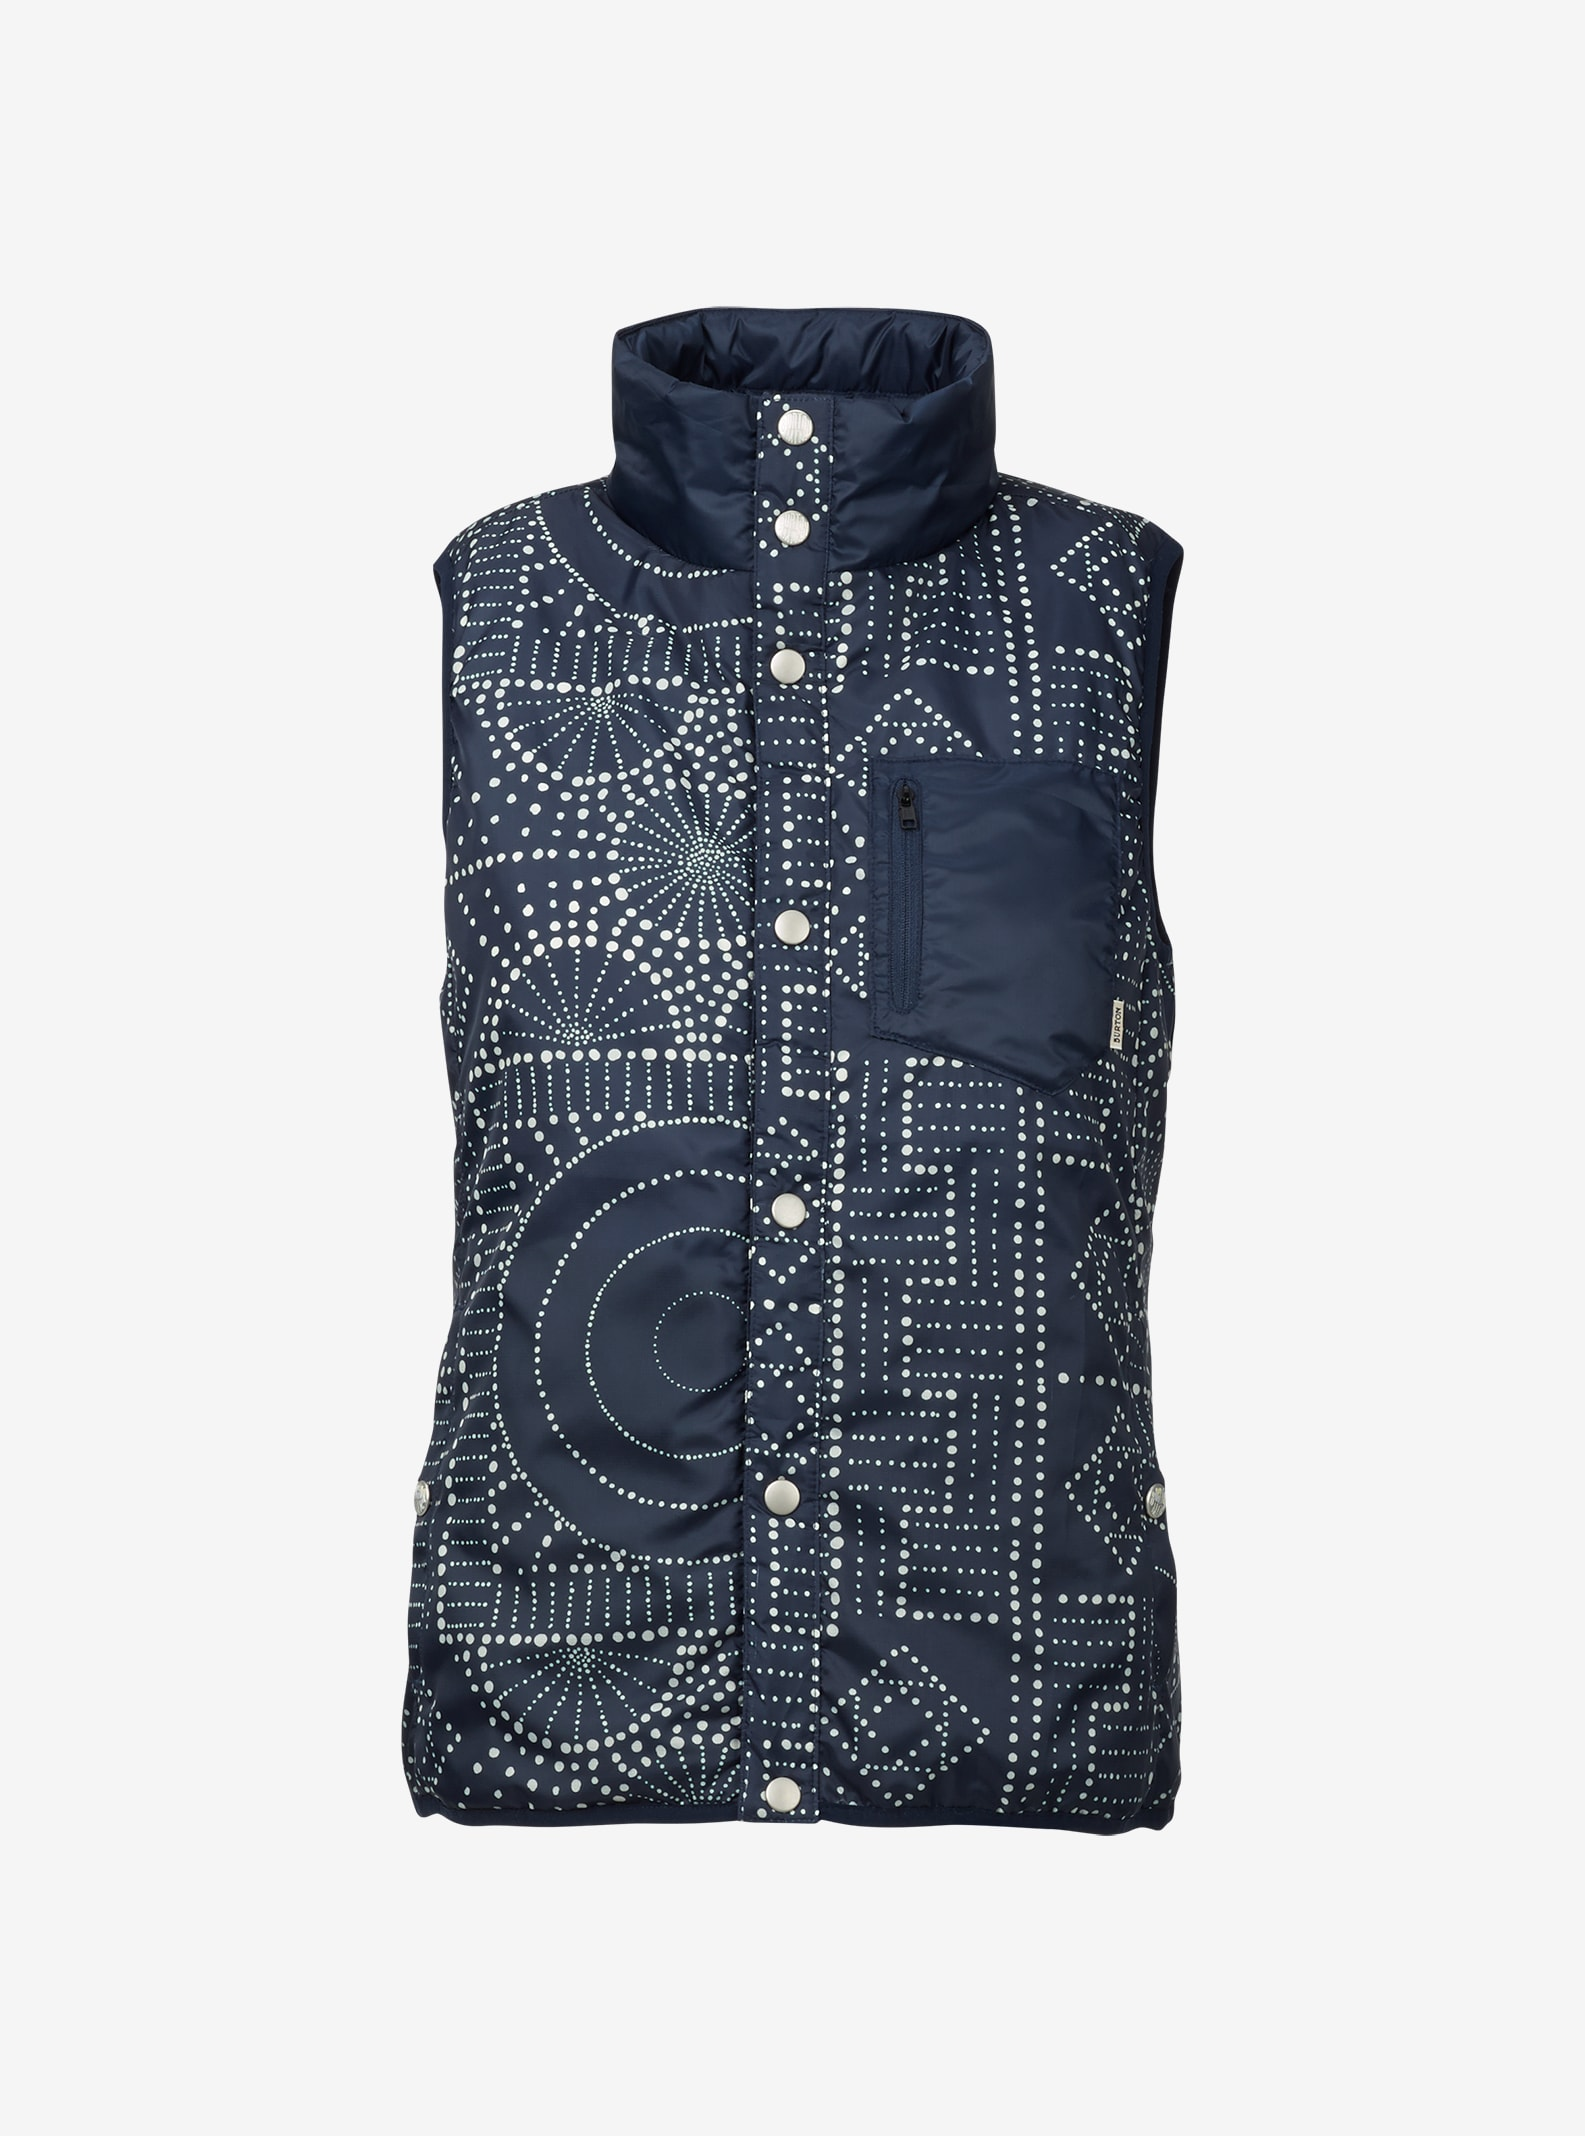 Burton Hella Light Insulator Vest shown in Bandota / Mood Indigo